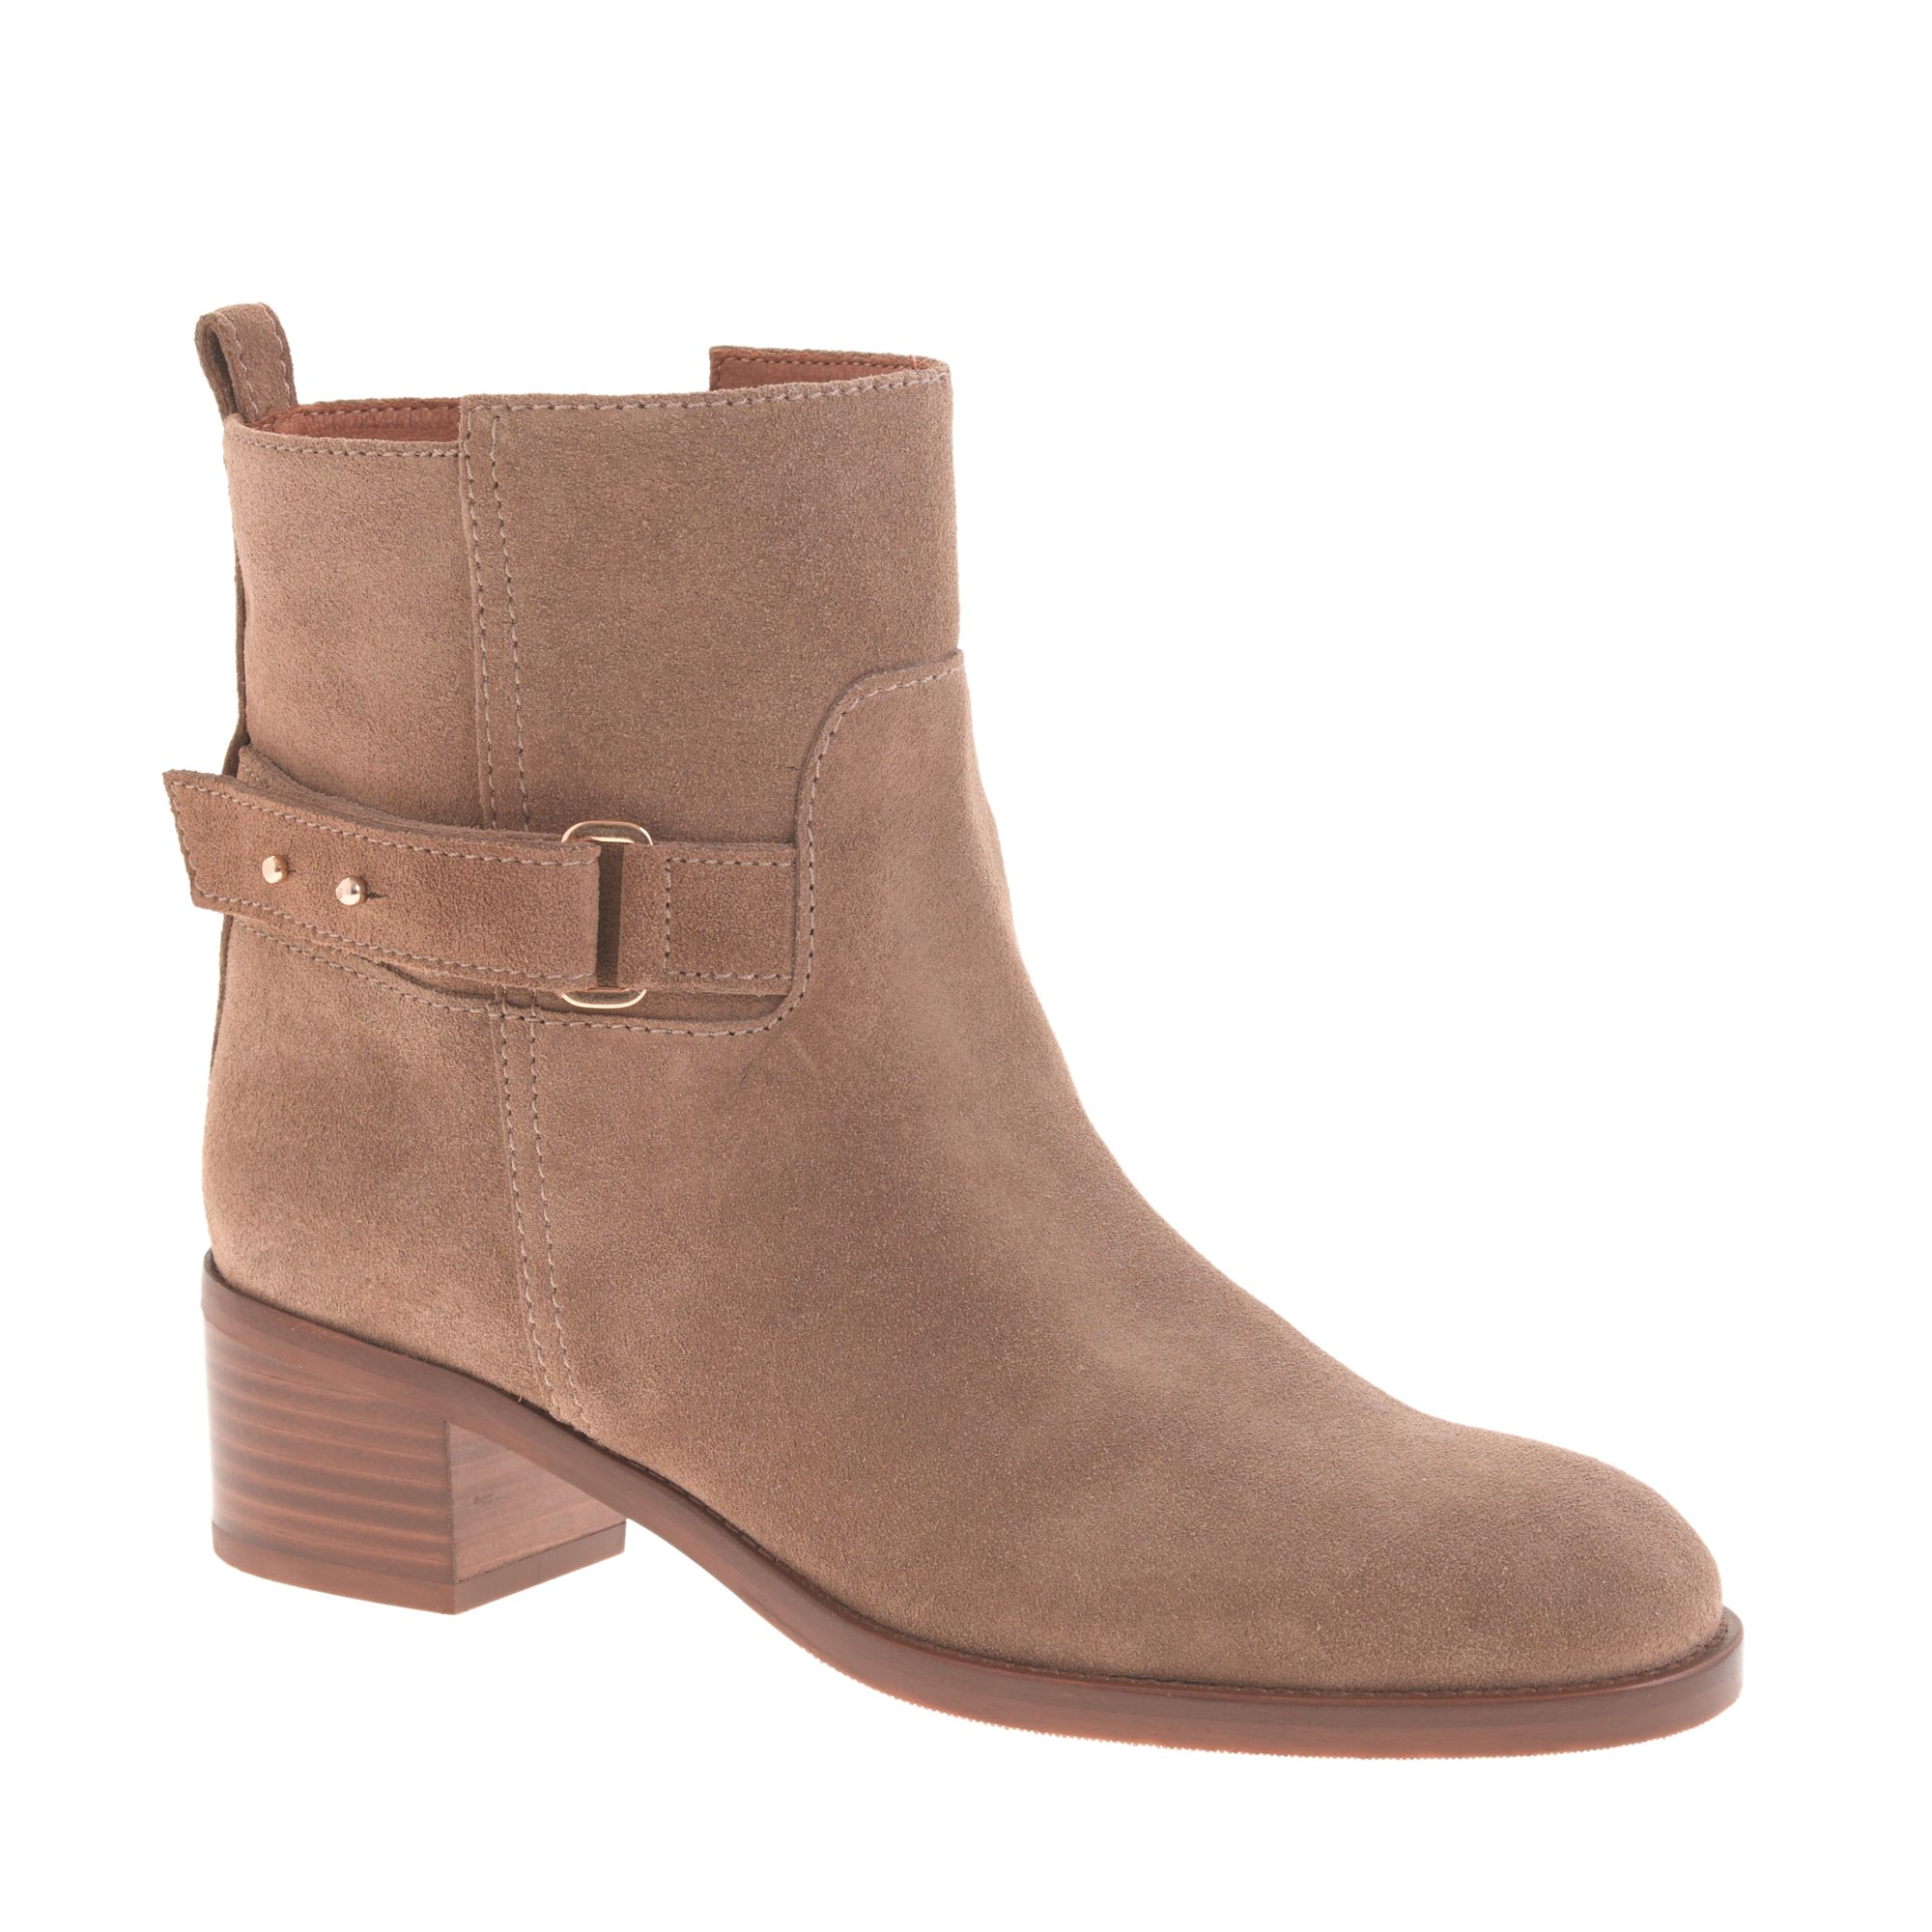 j crew suede ankle boots in brown weathered